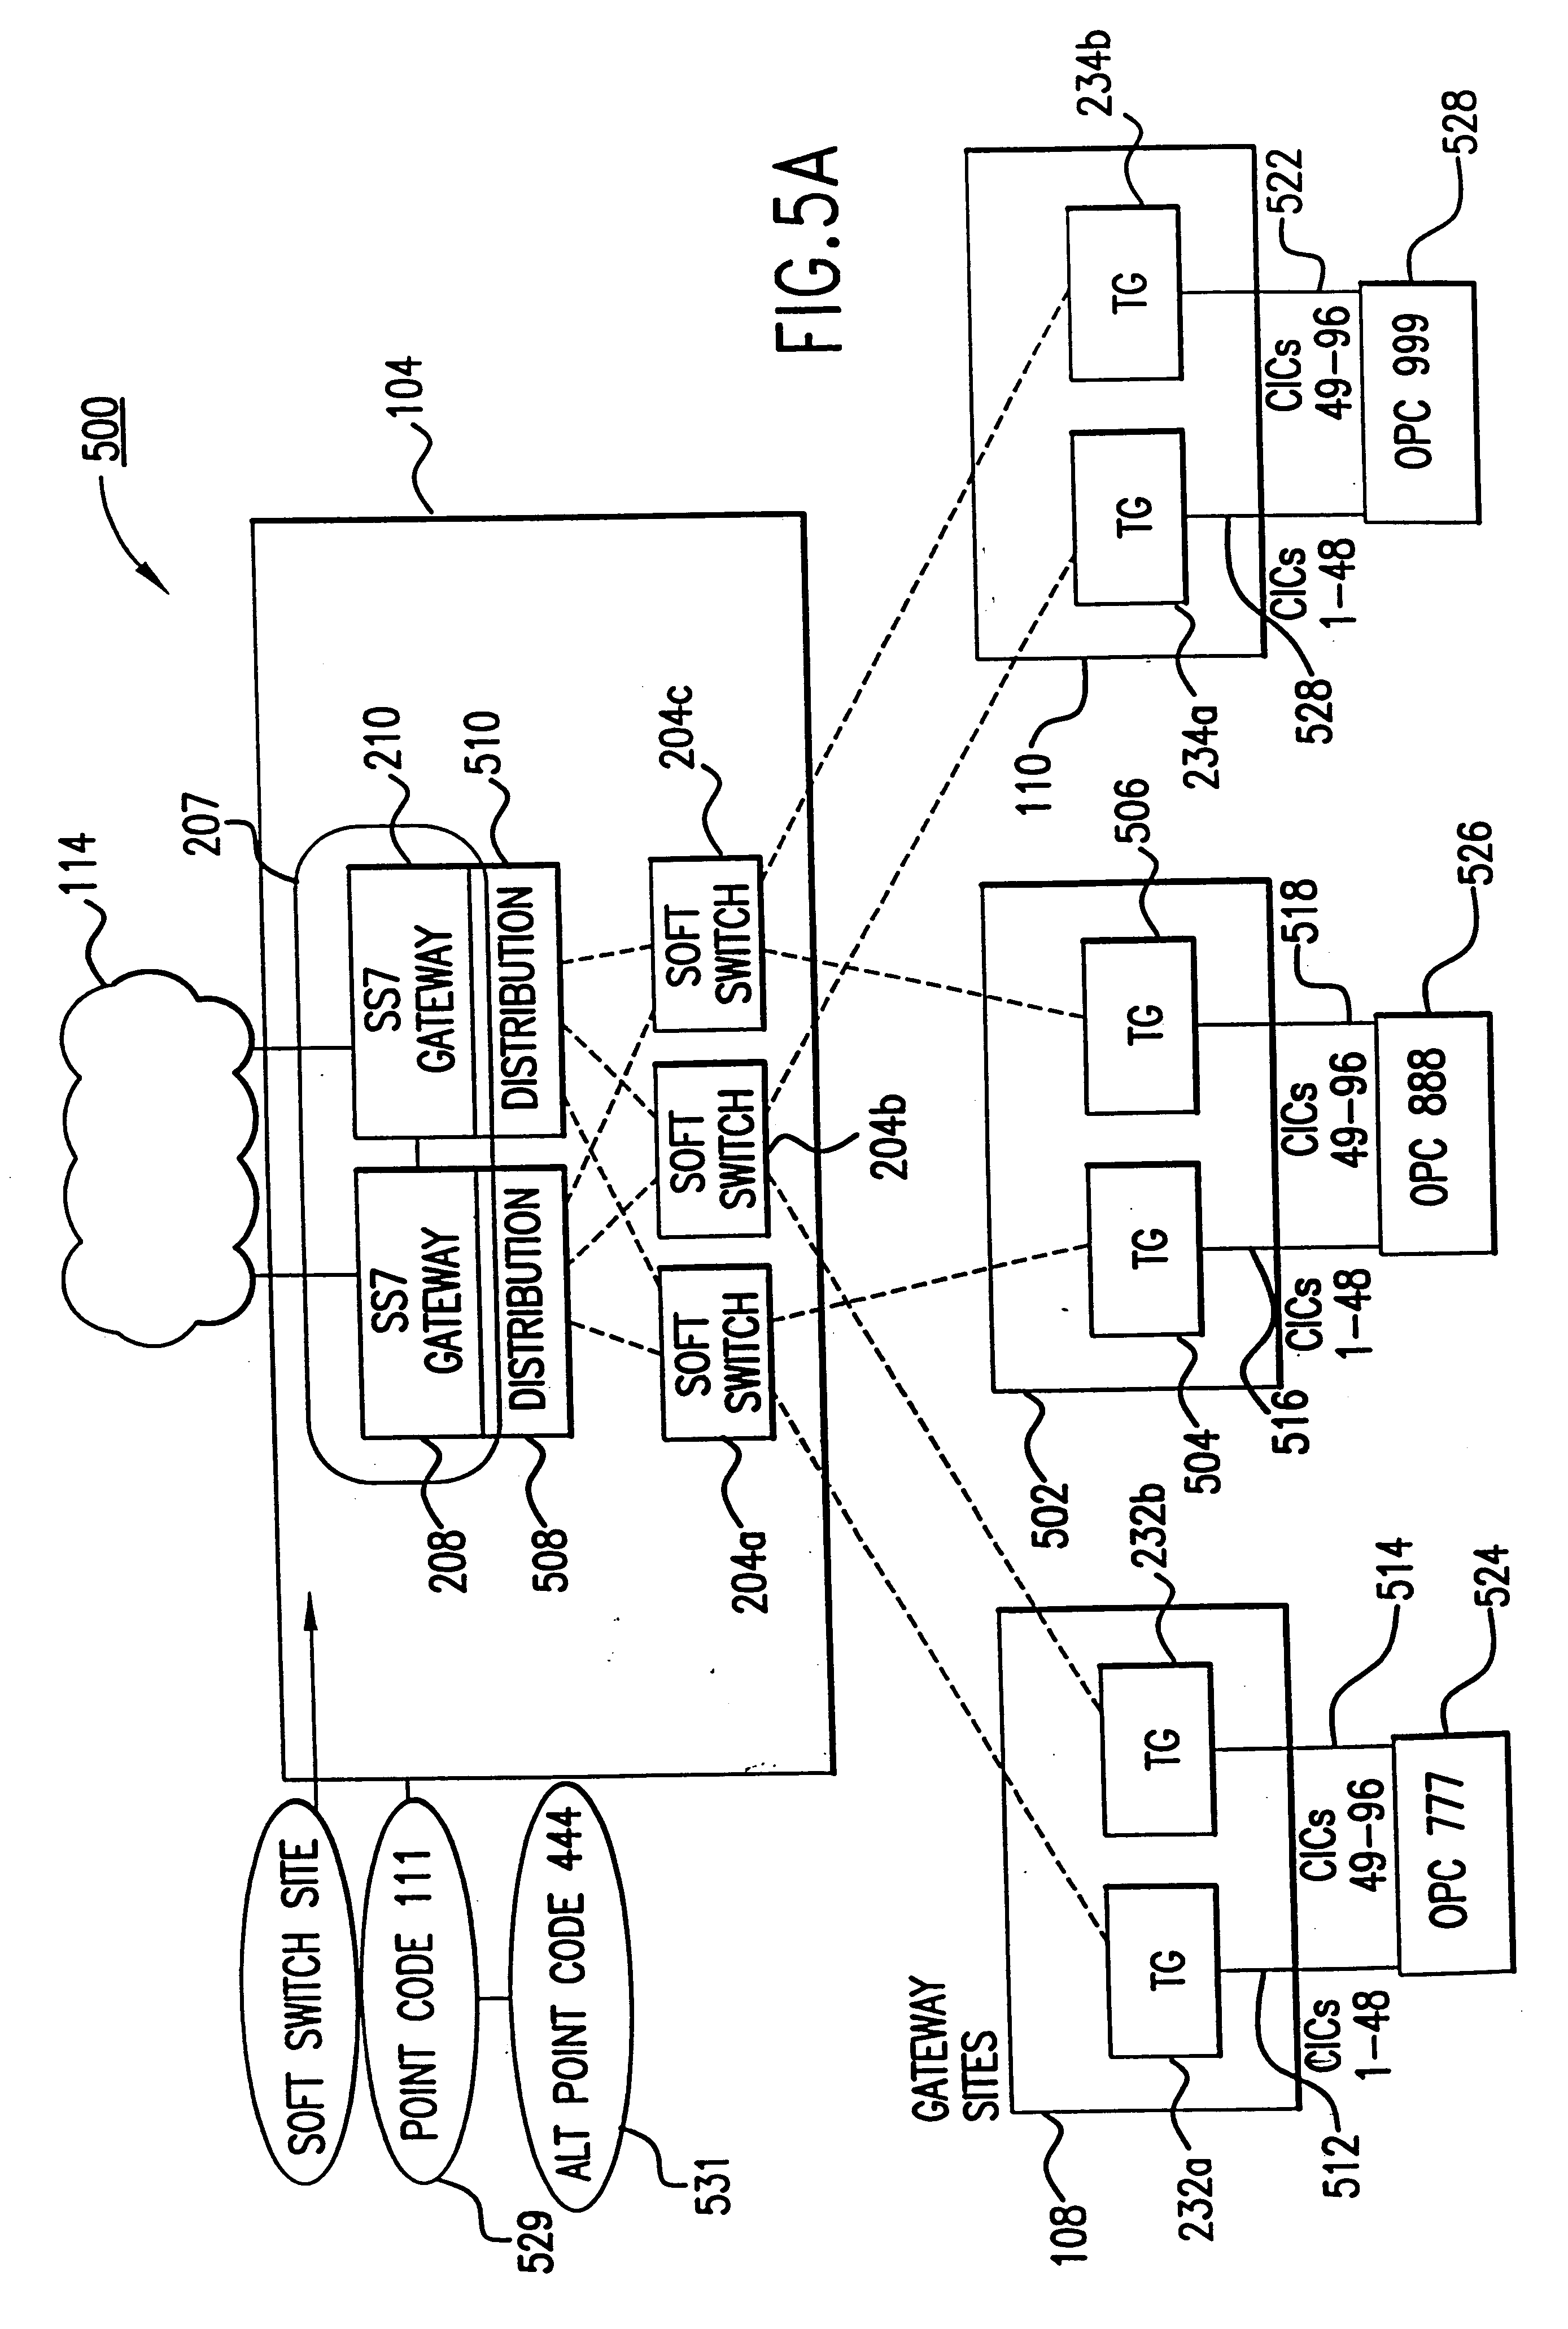 Patent Us 6614781 B1 Wiring Diagram Further 1950 Packard As Well 1997 Images